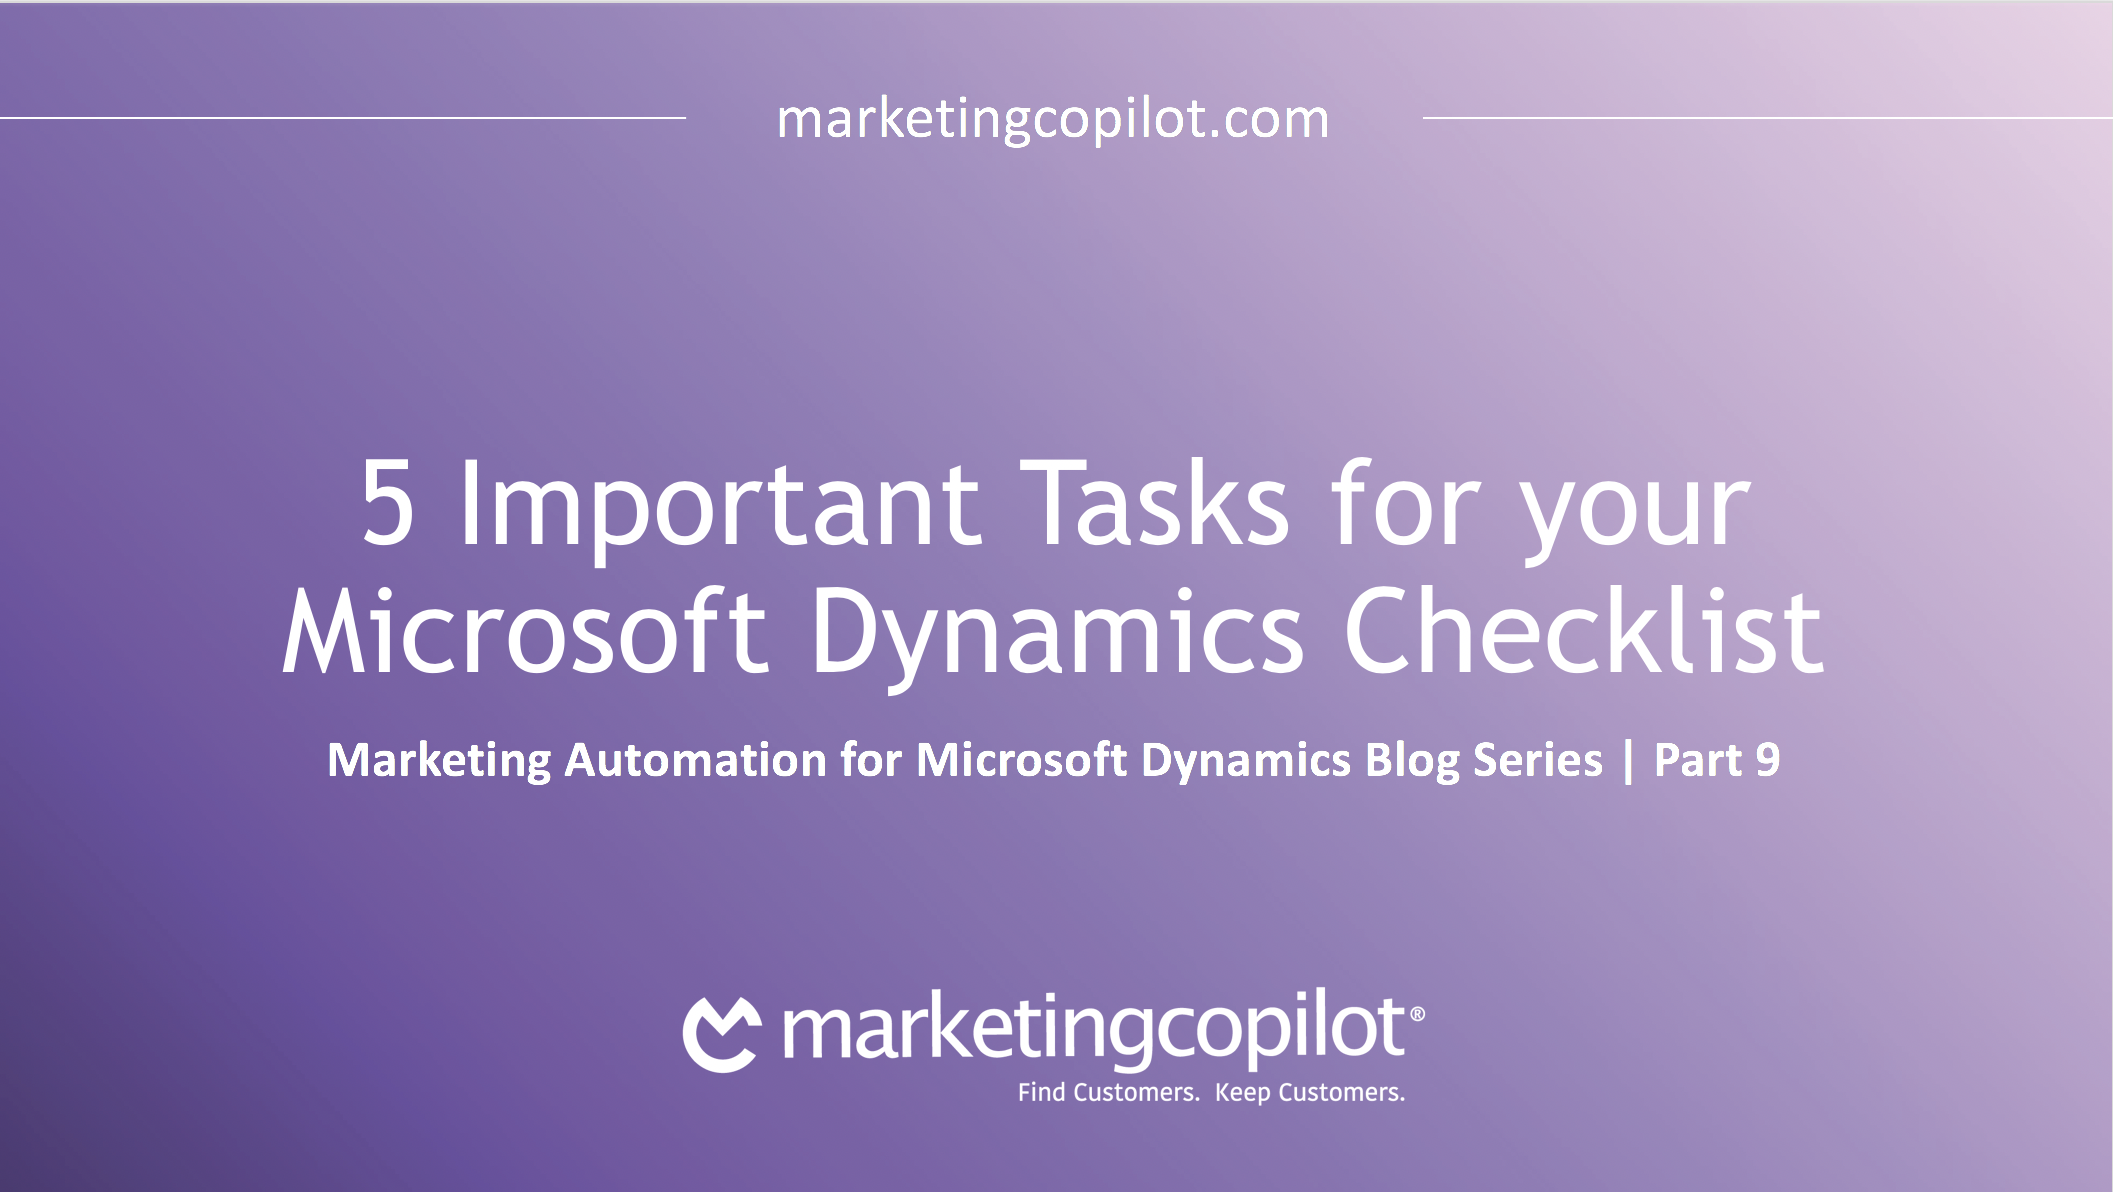 5 Important Tasks for your Microsoft Dynamics Checklist